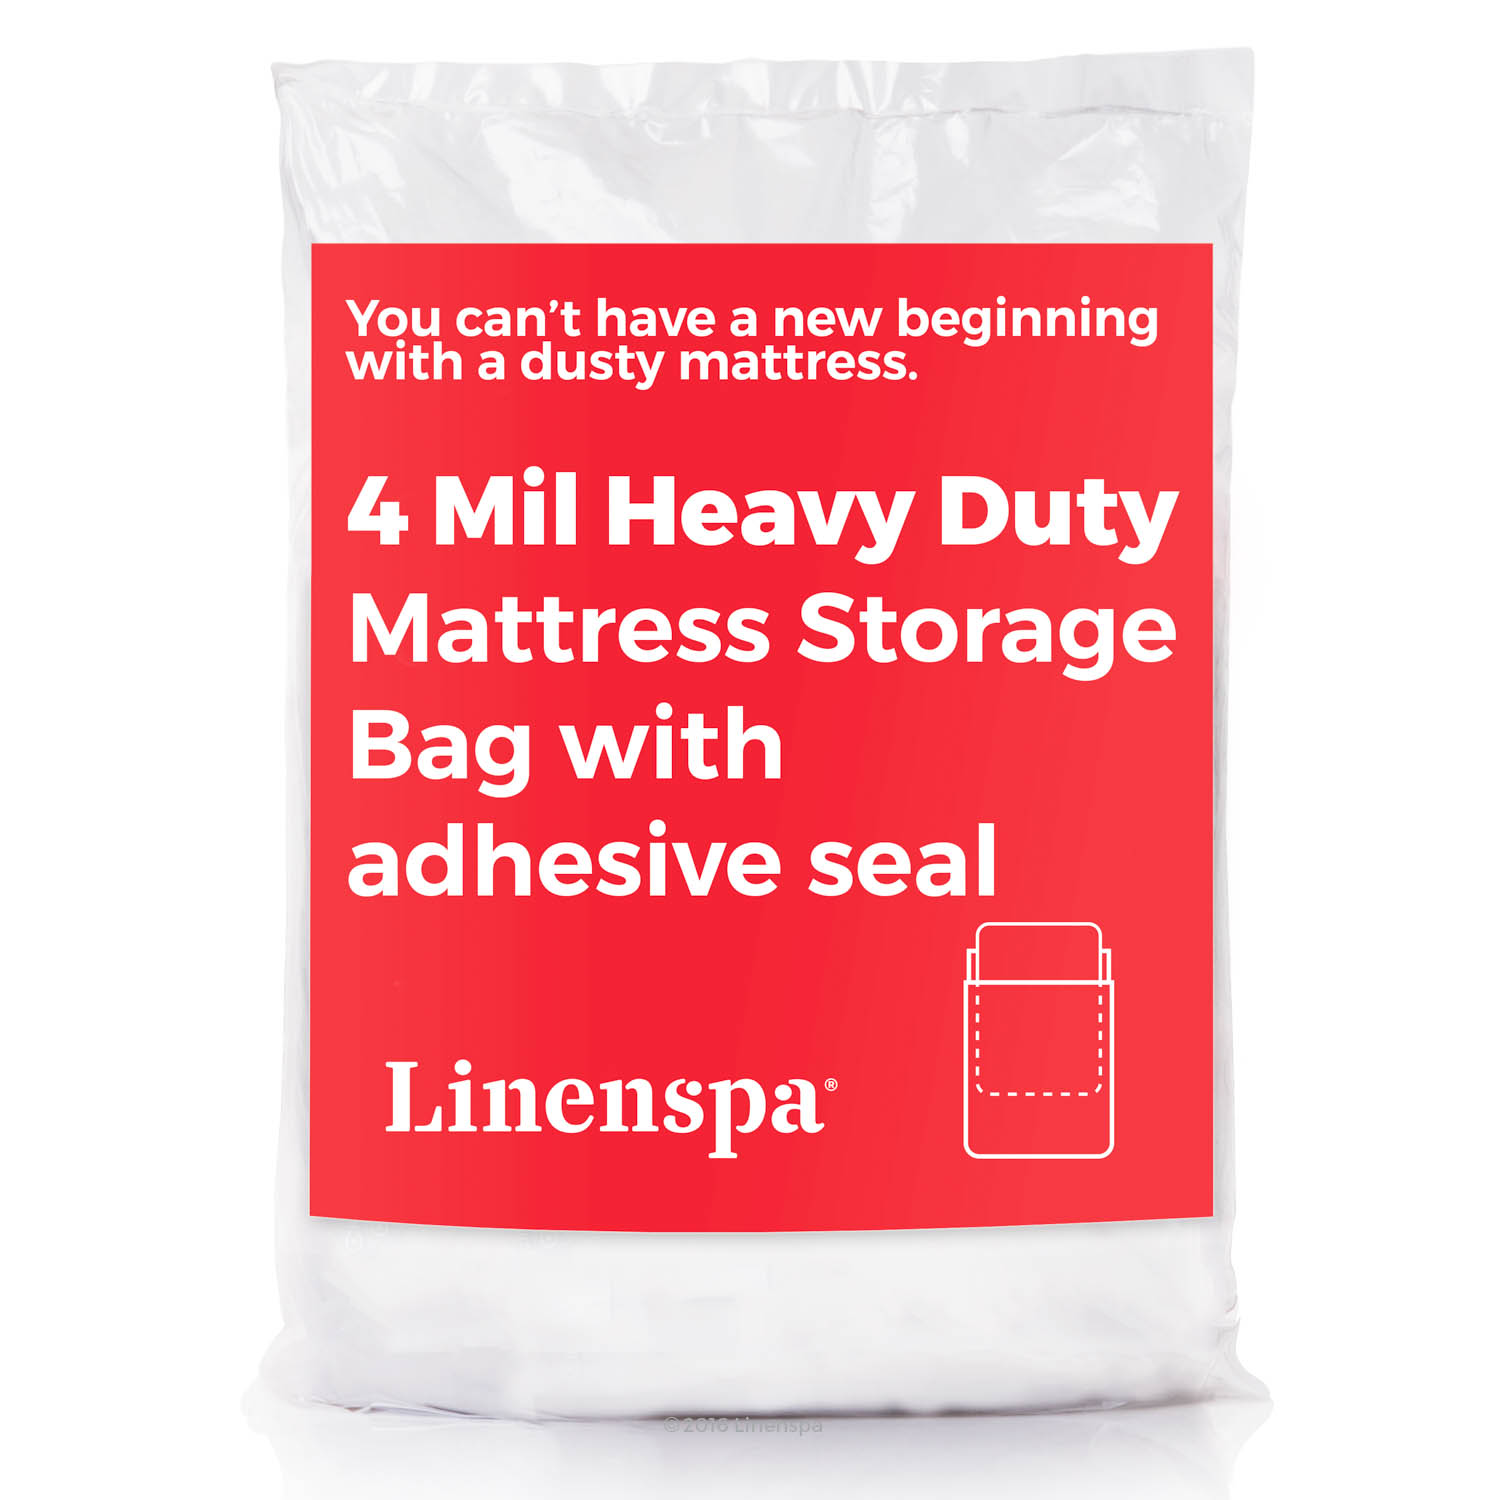 Linenspa 4 mil Heavy Duty Mattress Moving and Storage Bag with Adhesive Closure - Queen